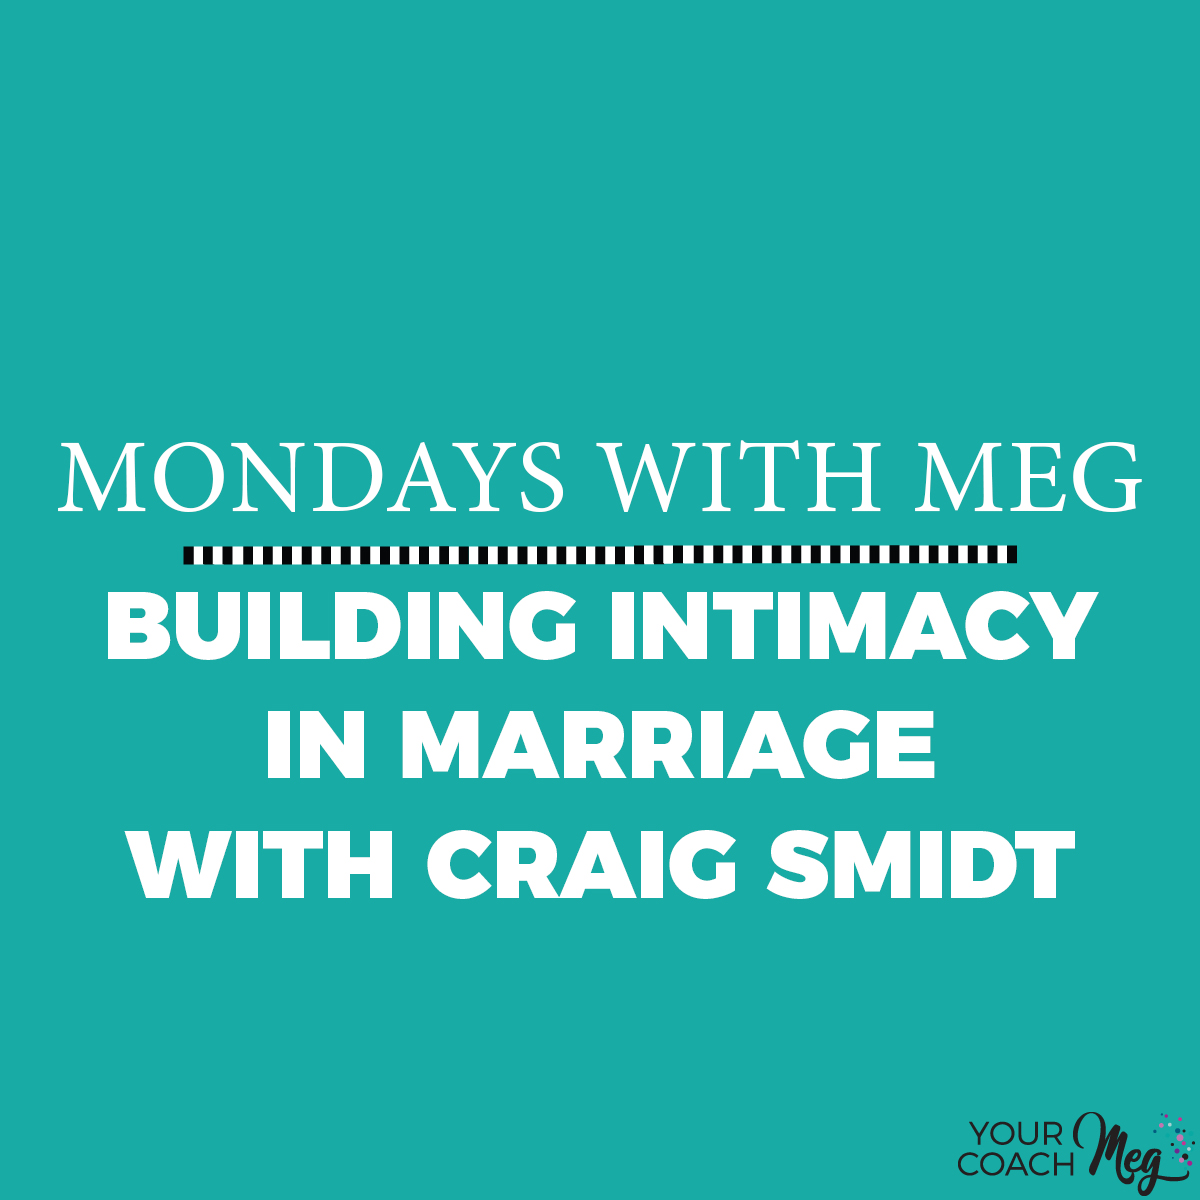 MONDAYS WITH MEG WITH  CRAIG SMIDT: BUILDING INTIMACY IN MARRIAGE